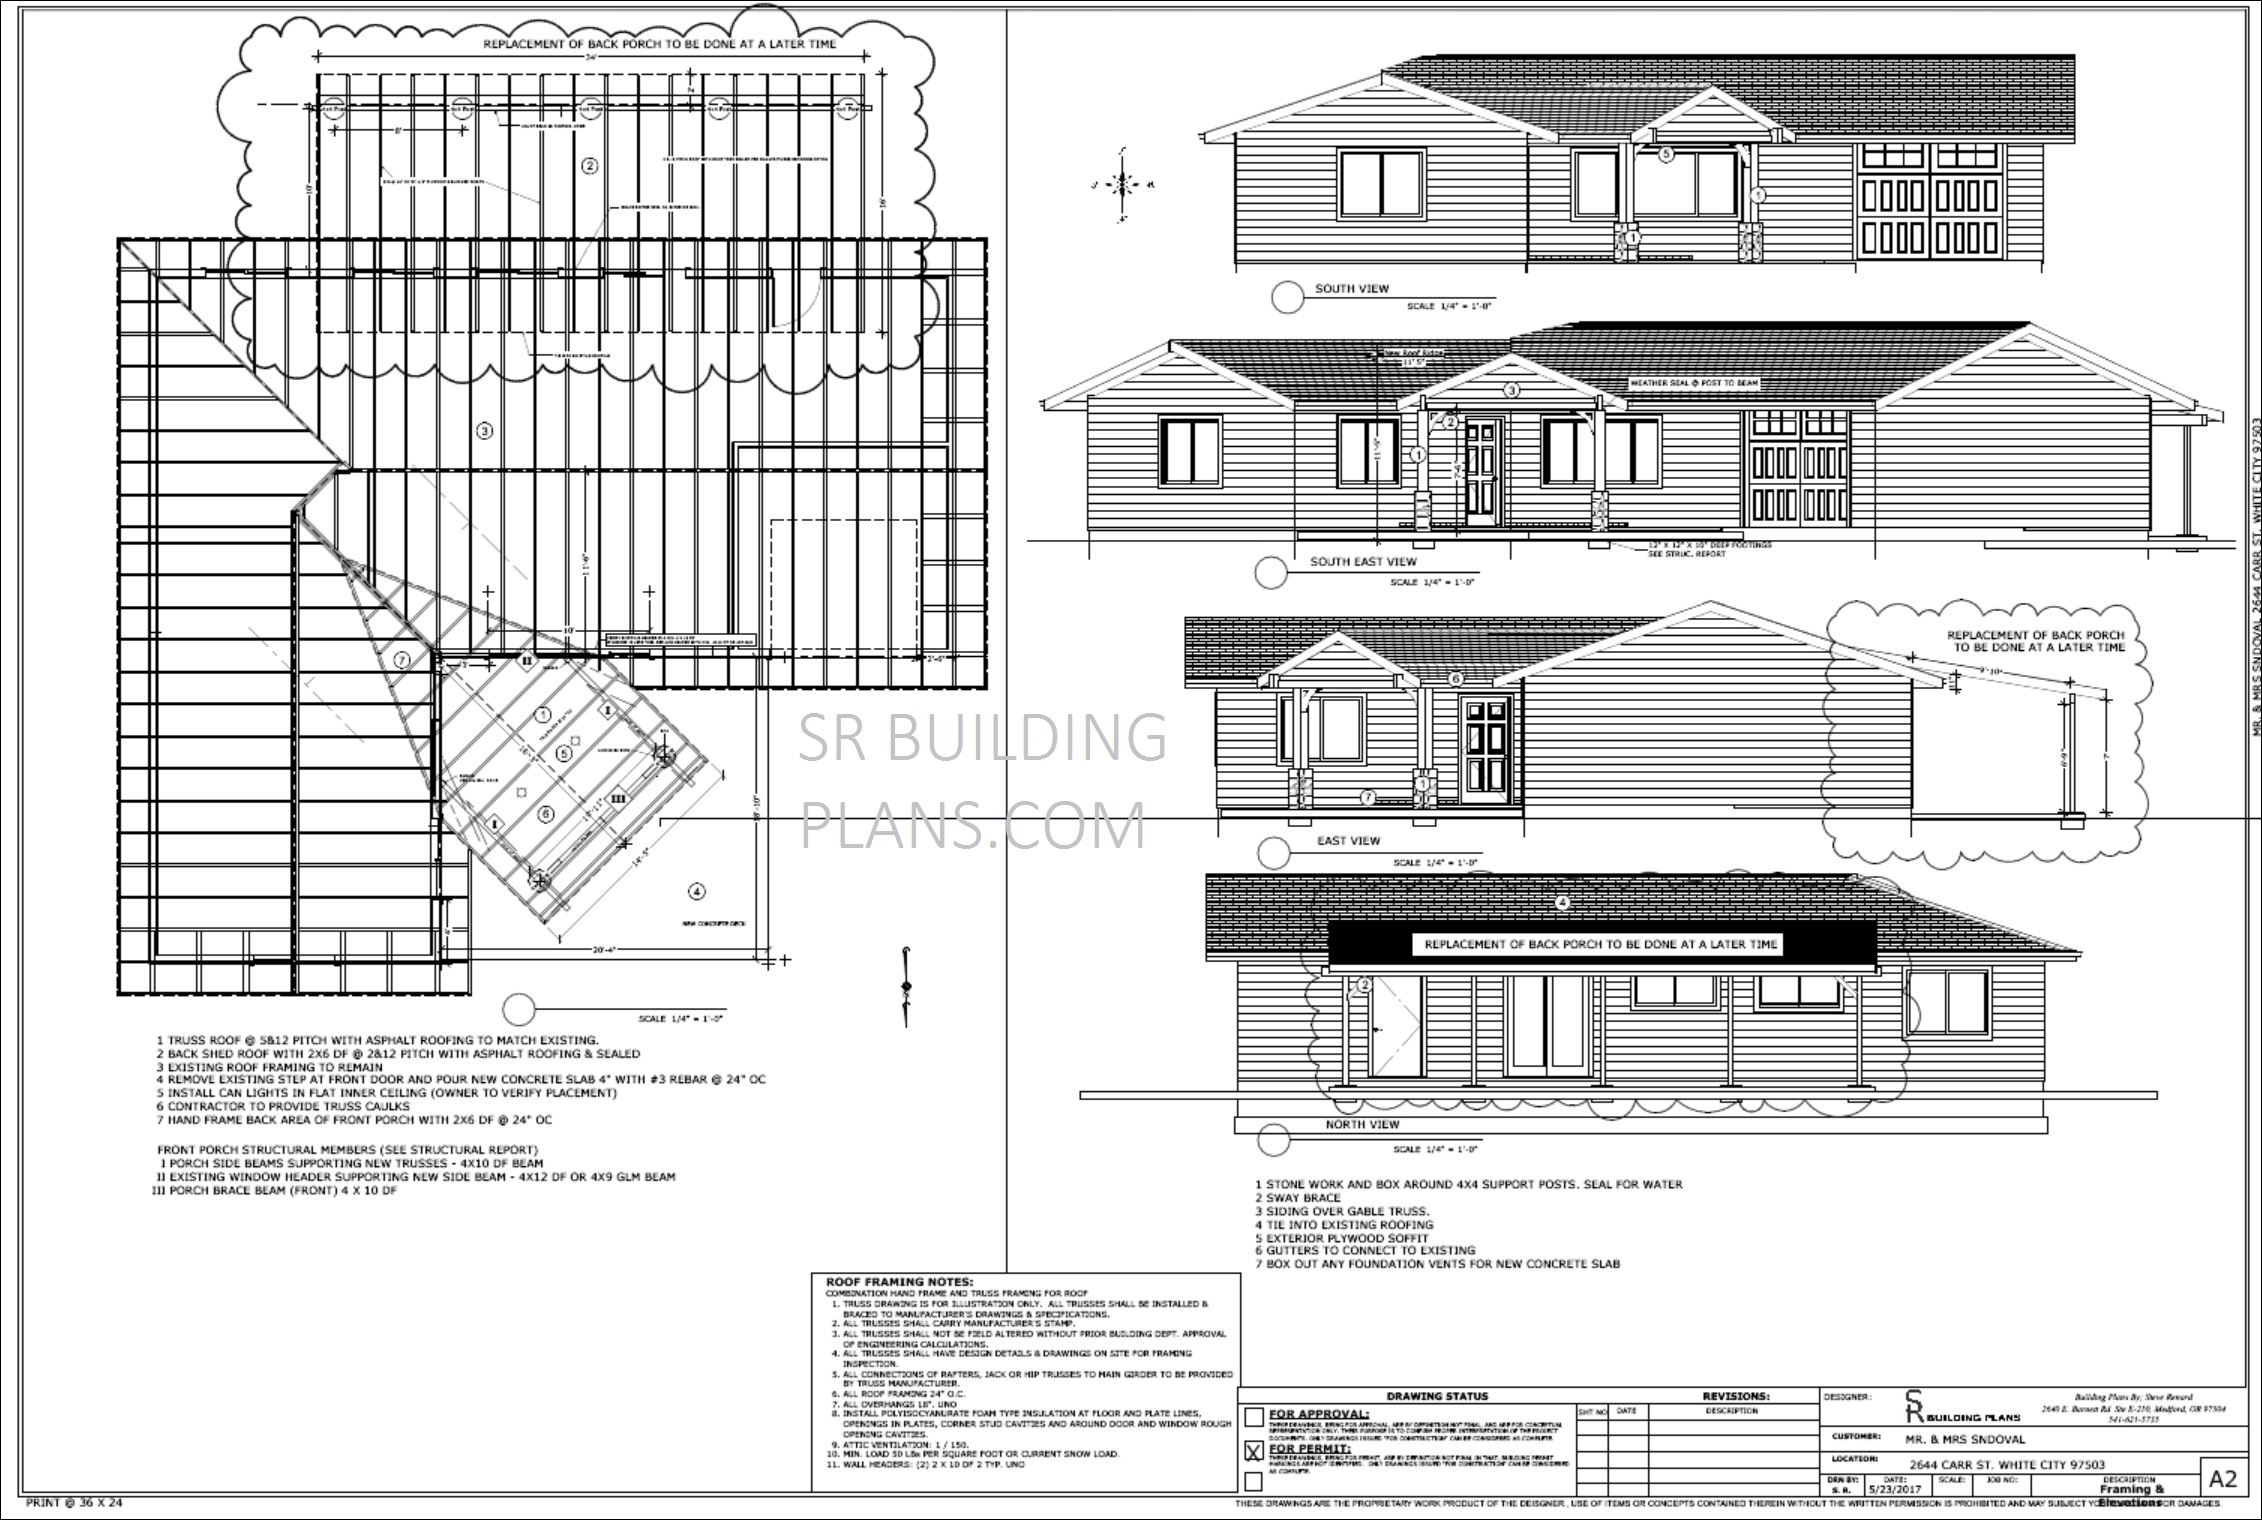 SR Building Plans Oregon